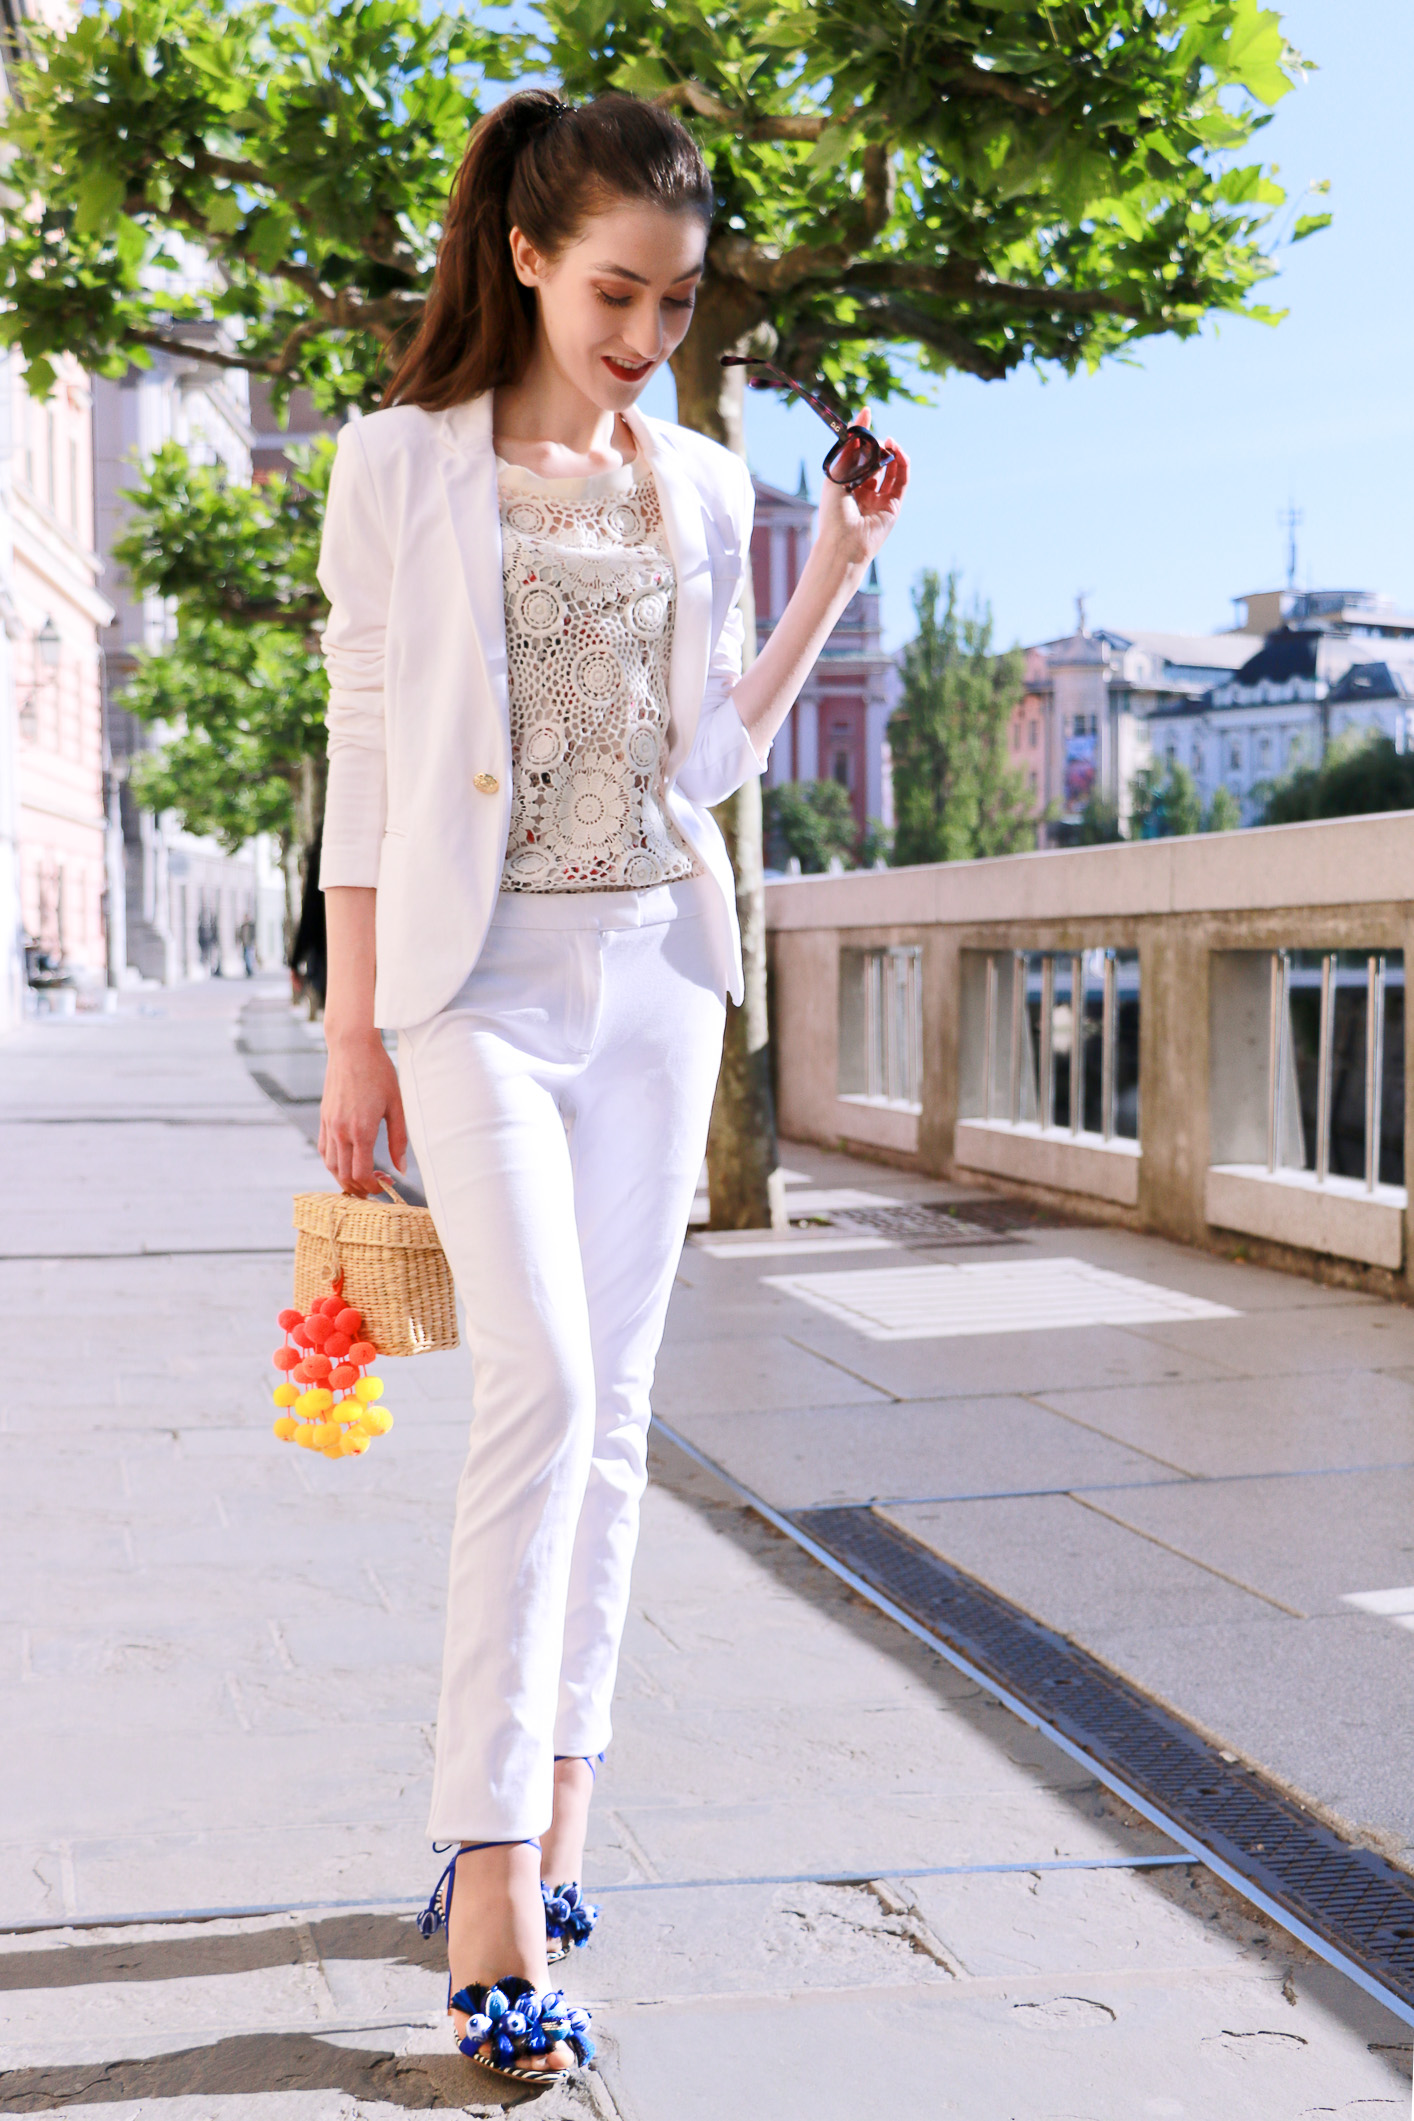 Fashion blogger Veronika Lipar of Brunette From Wall Street sharing how to all white suit to the office this summer